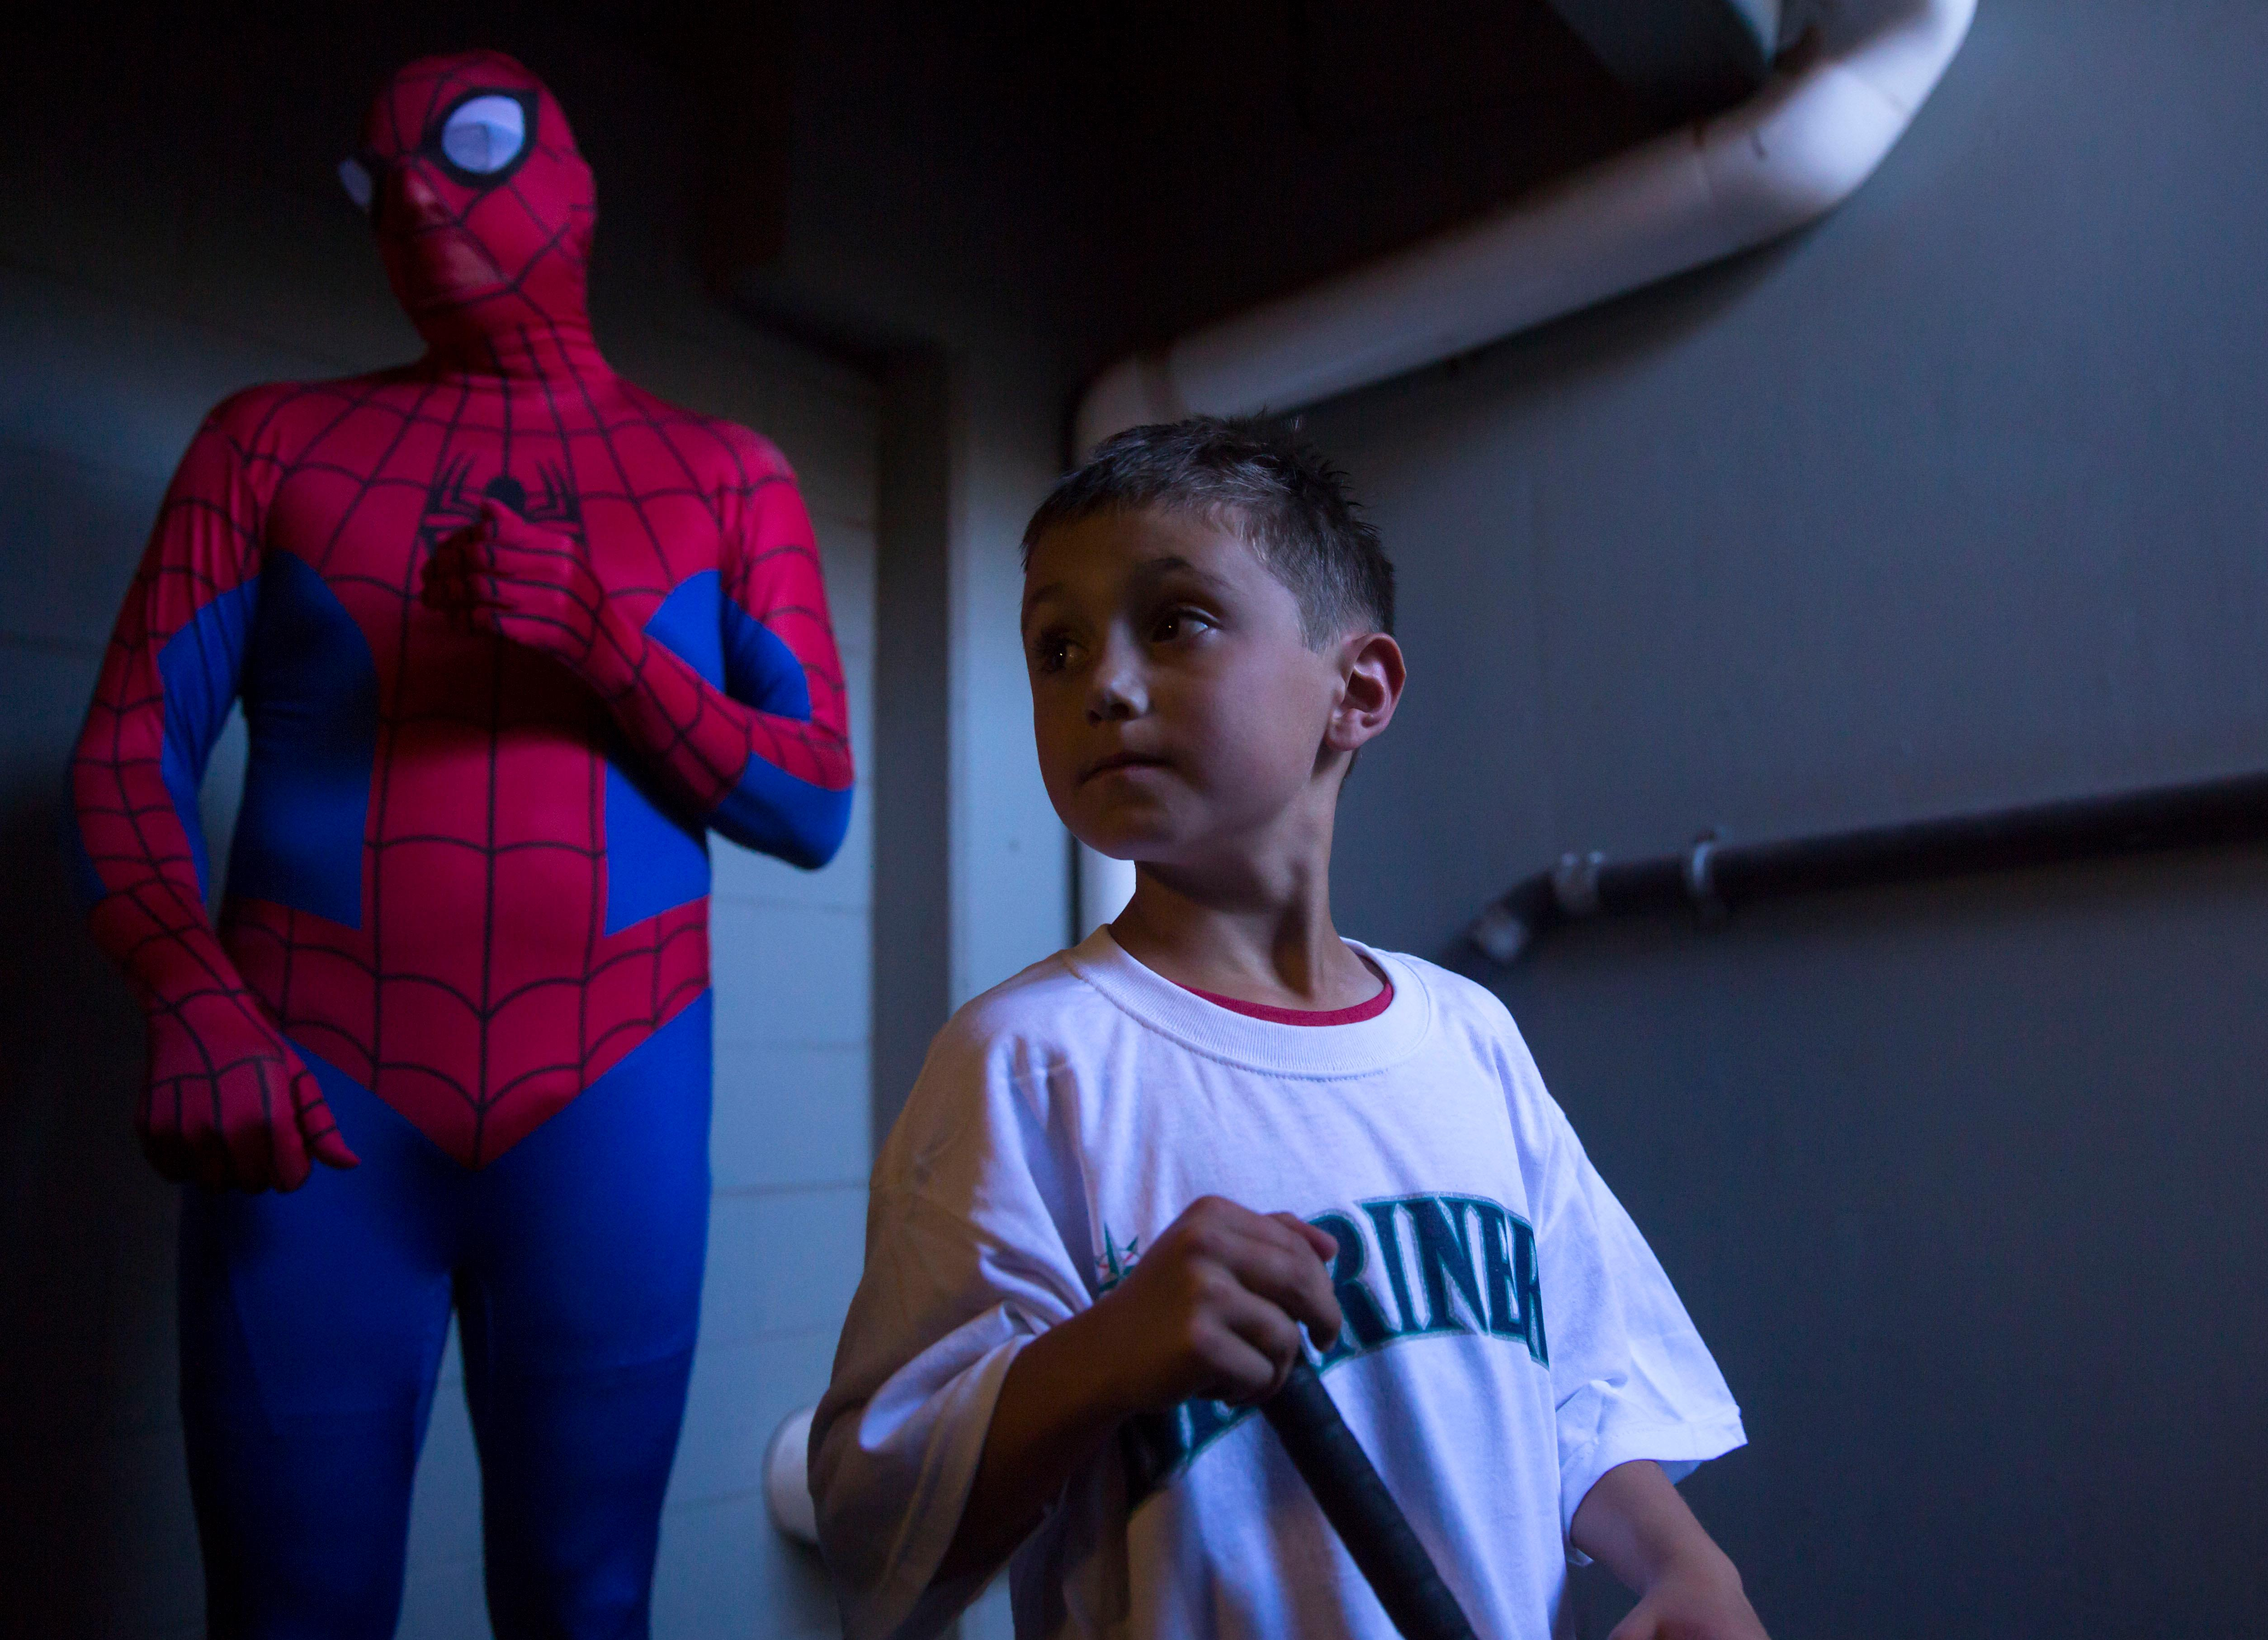 "Mason Nettleton was diagnosed with kidney cancer at age four, he bravely adopted a superhero attitude, often dressing as Spider-Man or Captain America, and teamed up with superheroes at Seattle Children's Hospital in his battle to beat the disease. After a surgery and chemotherapy, Mason valiantly beat his cancer by the age of six. Now age seven, Mason was selected to serve Seattle as ""Superhero for a Day"" on Tuesday, June 27, in conjunction with a special premier of the new Spider-Man: Homecoming movie. The Nettleton family was treated out with a stay at the Four Seasons Hotel, Mocktail happy hour in Spider-Man suits with chef Ethan Stowell at Goldfinch Tavern, a visit to the Space Needle observation deck, and a Seattle Mariners on-field visit to batting practice before the Mariners host Philadelphia. (Sy Bean / Seattle Refined)"